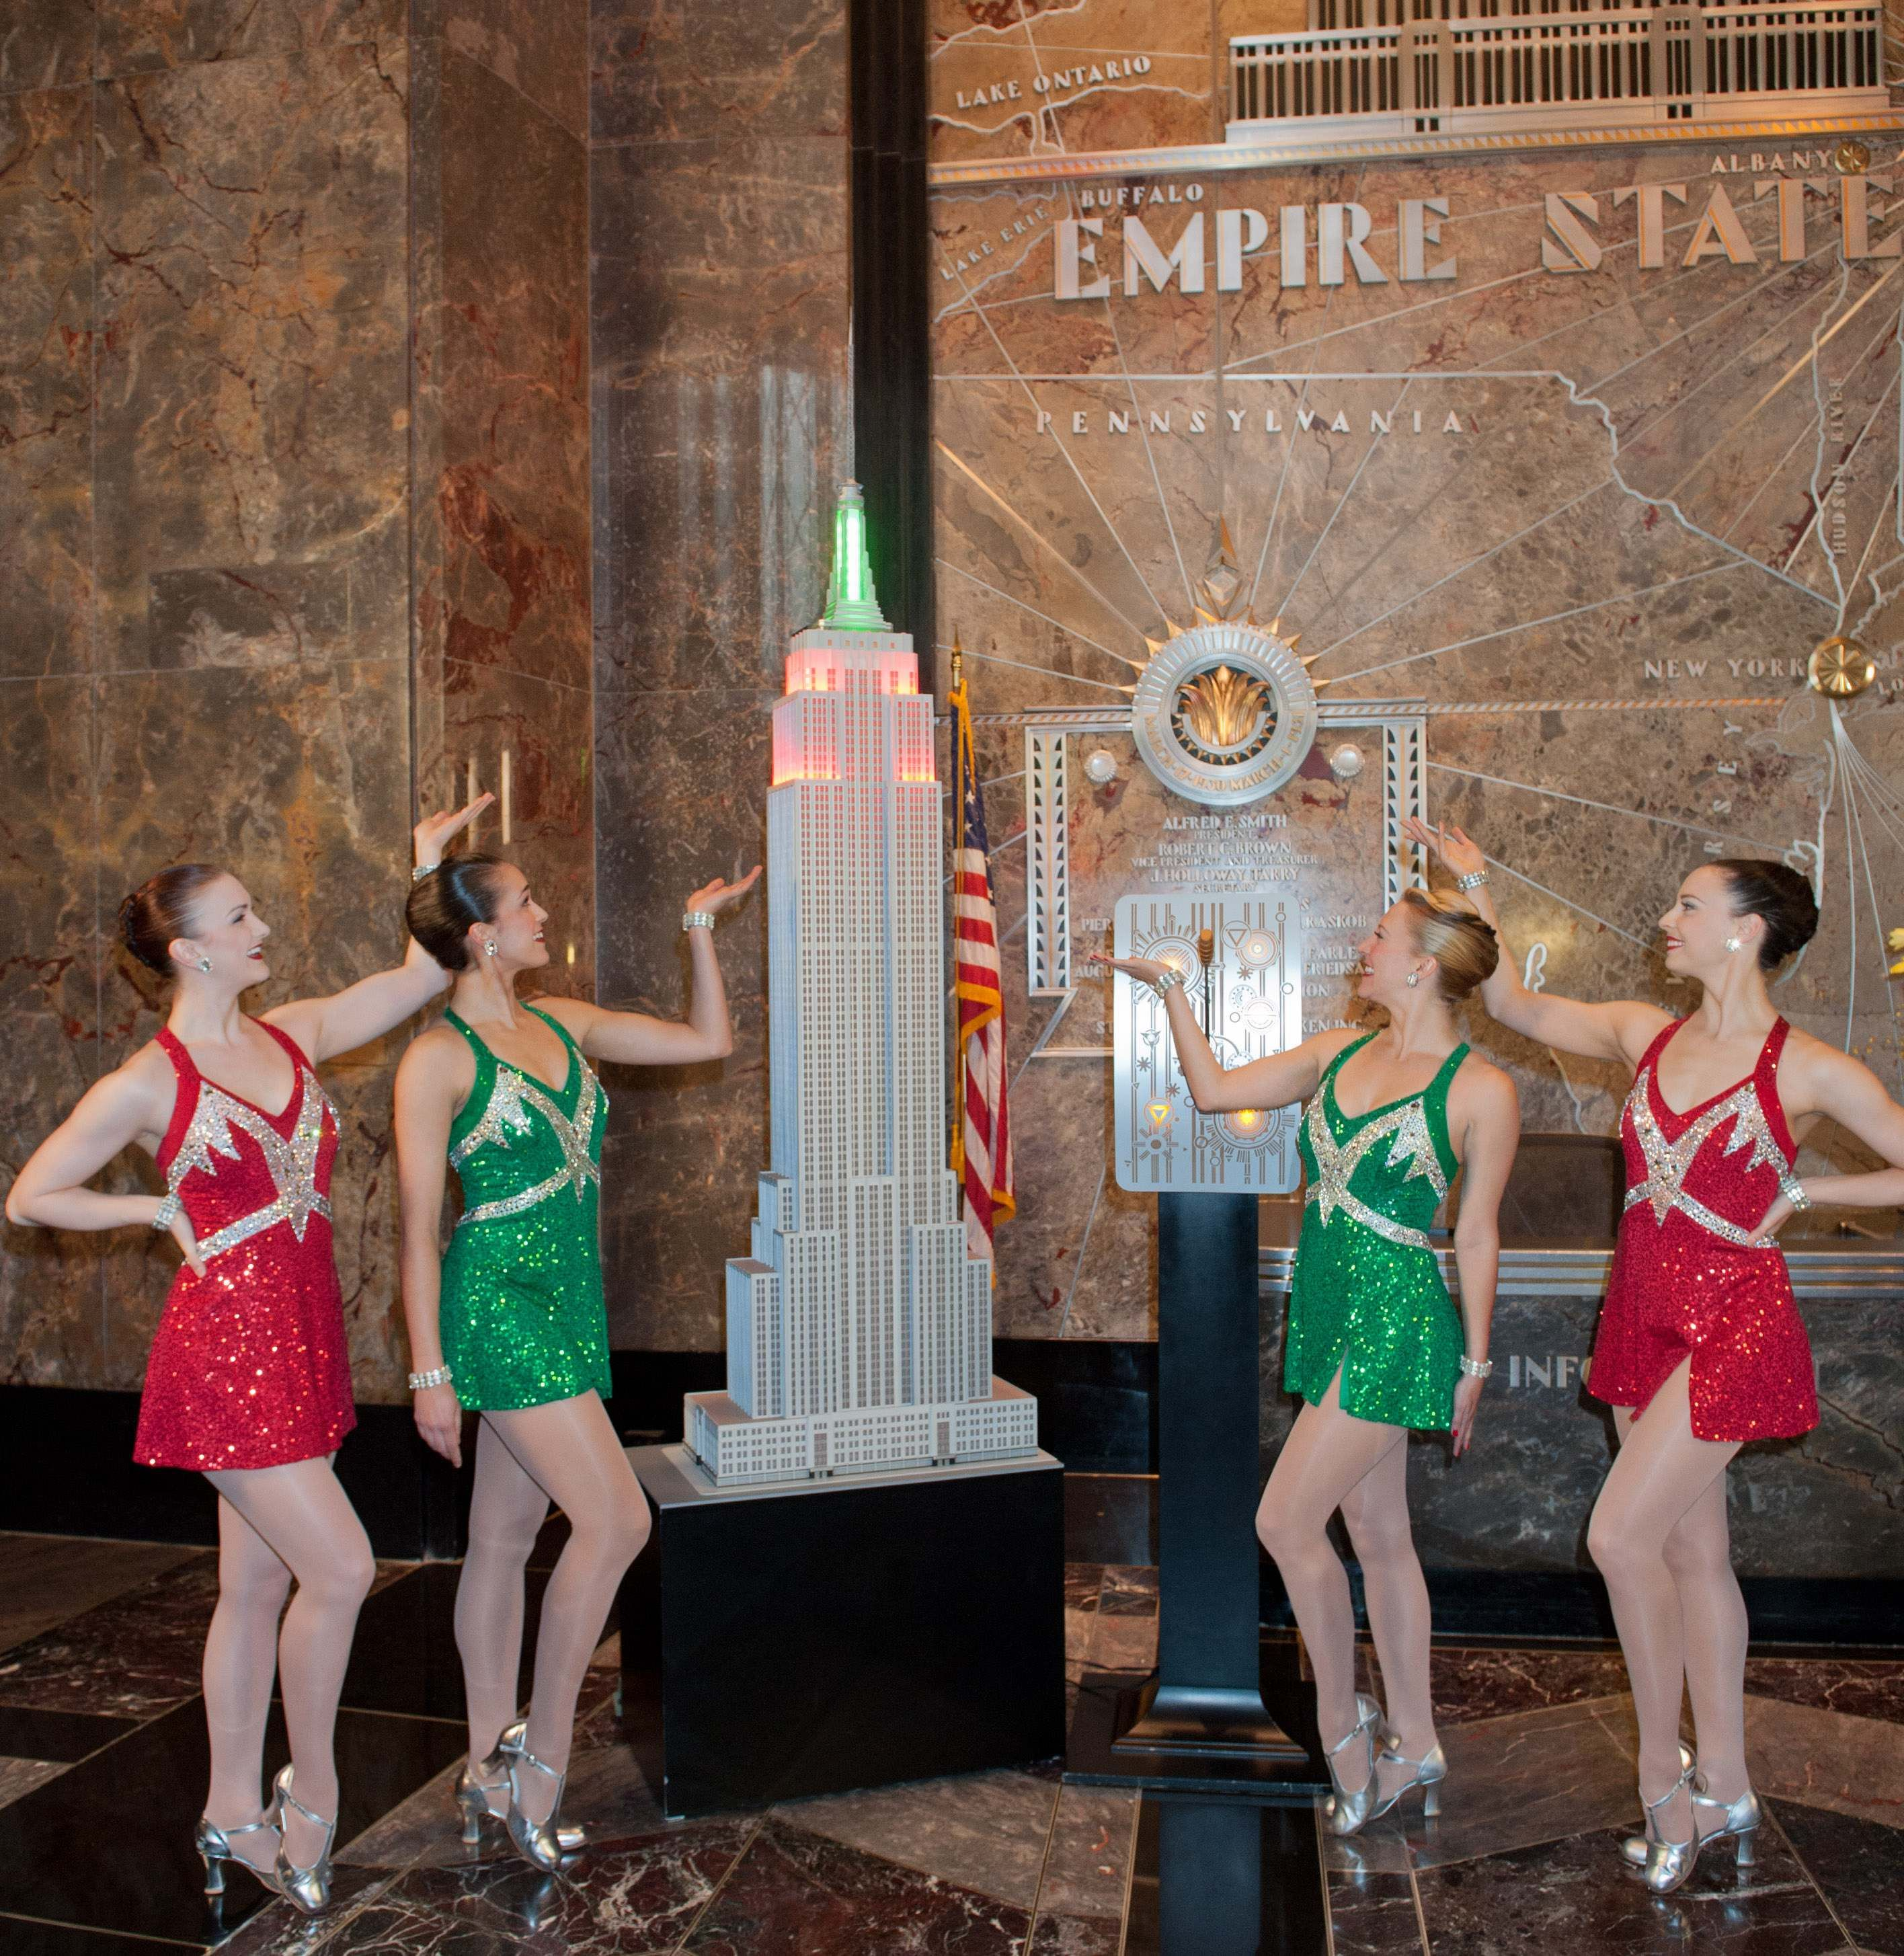 The Radio City Rockettes light the Empire State Building in red and